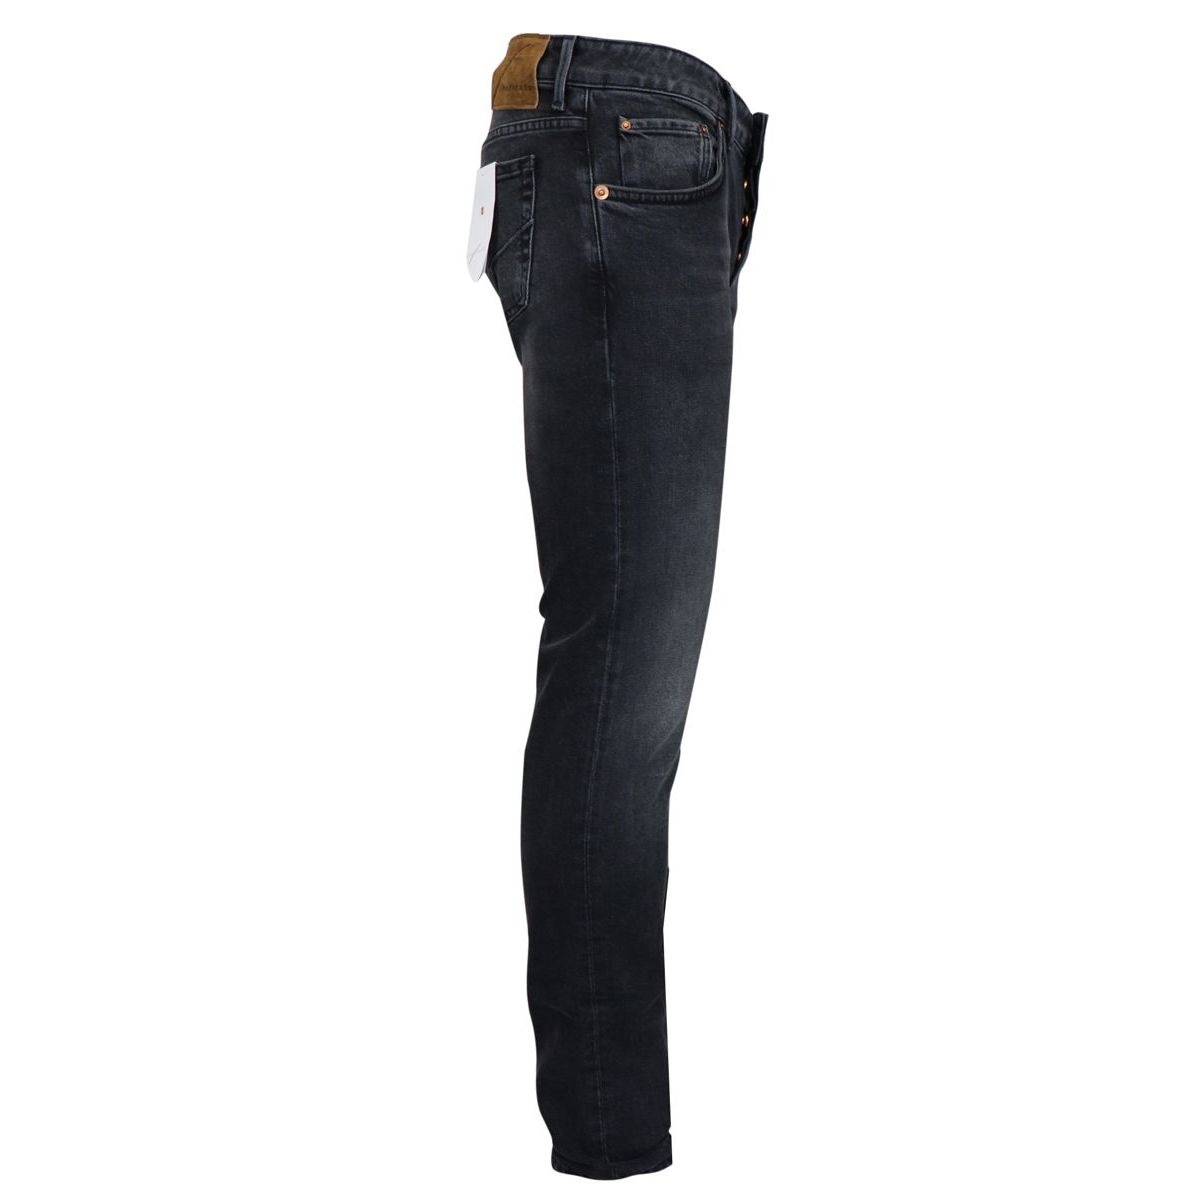 dark wash slim jeans Black HAND PICKED